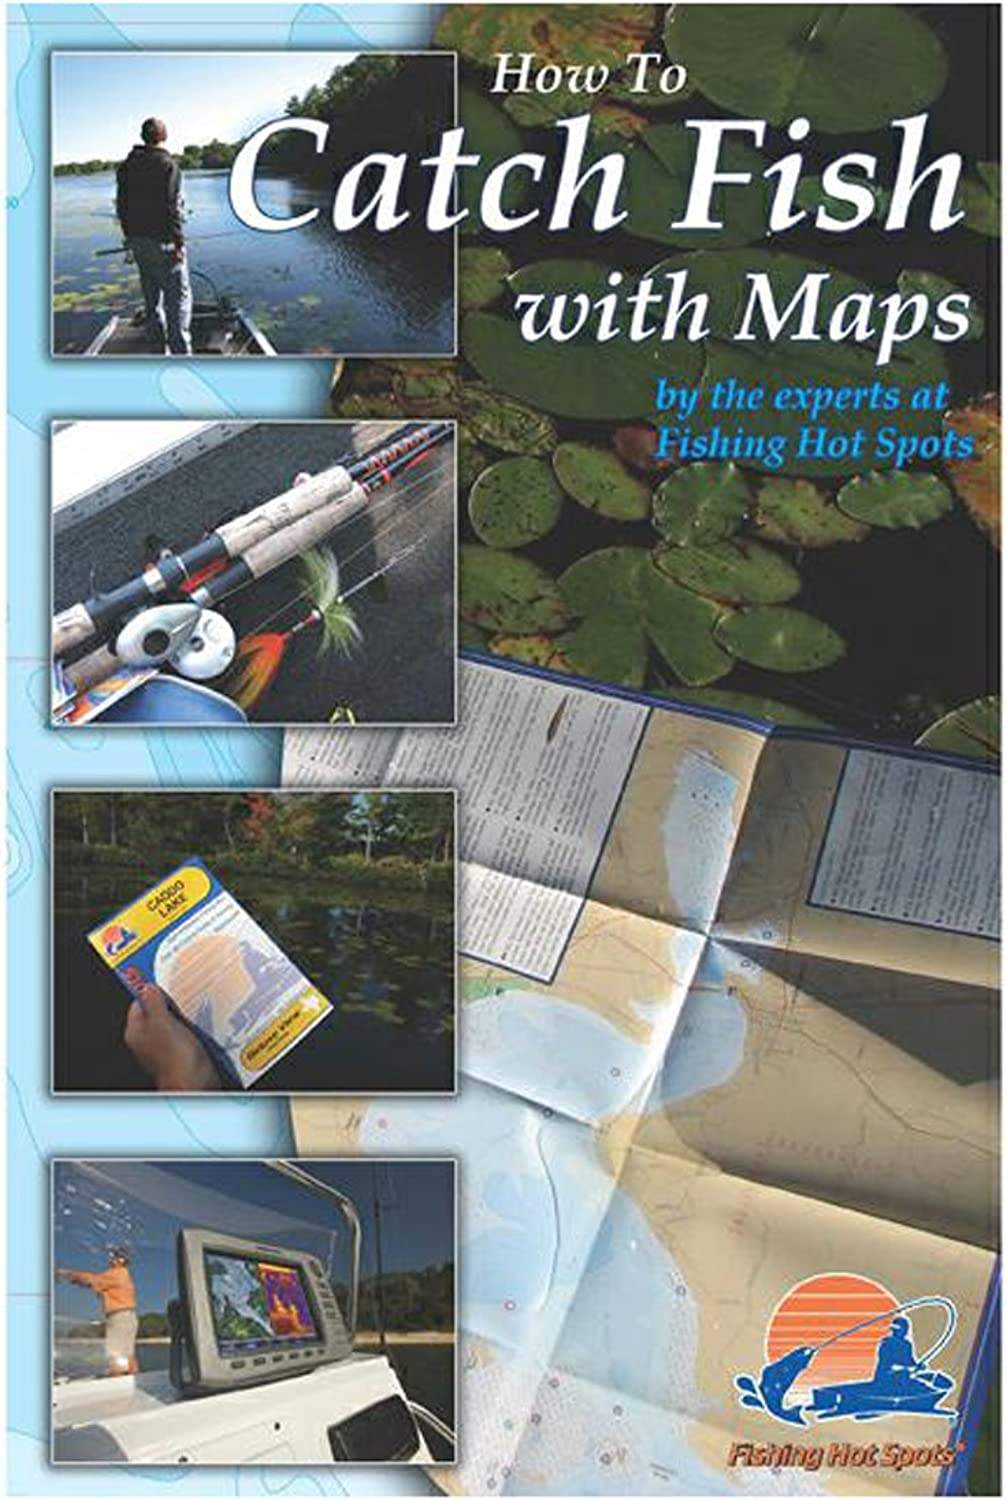 Fishing Hot Spots Catch Fish With Maps Fishing Products